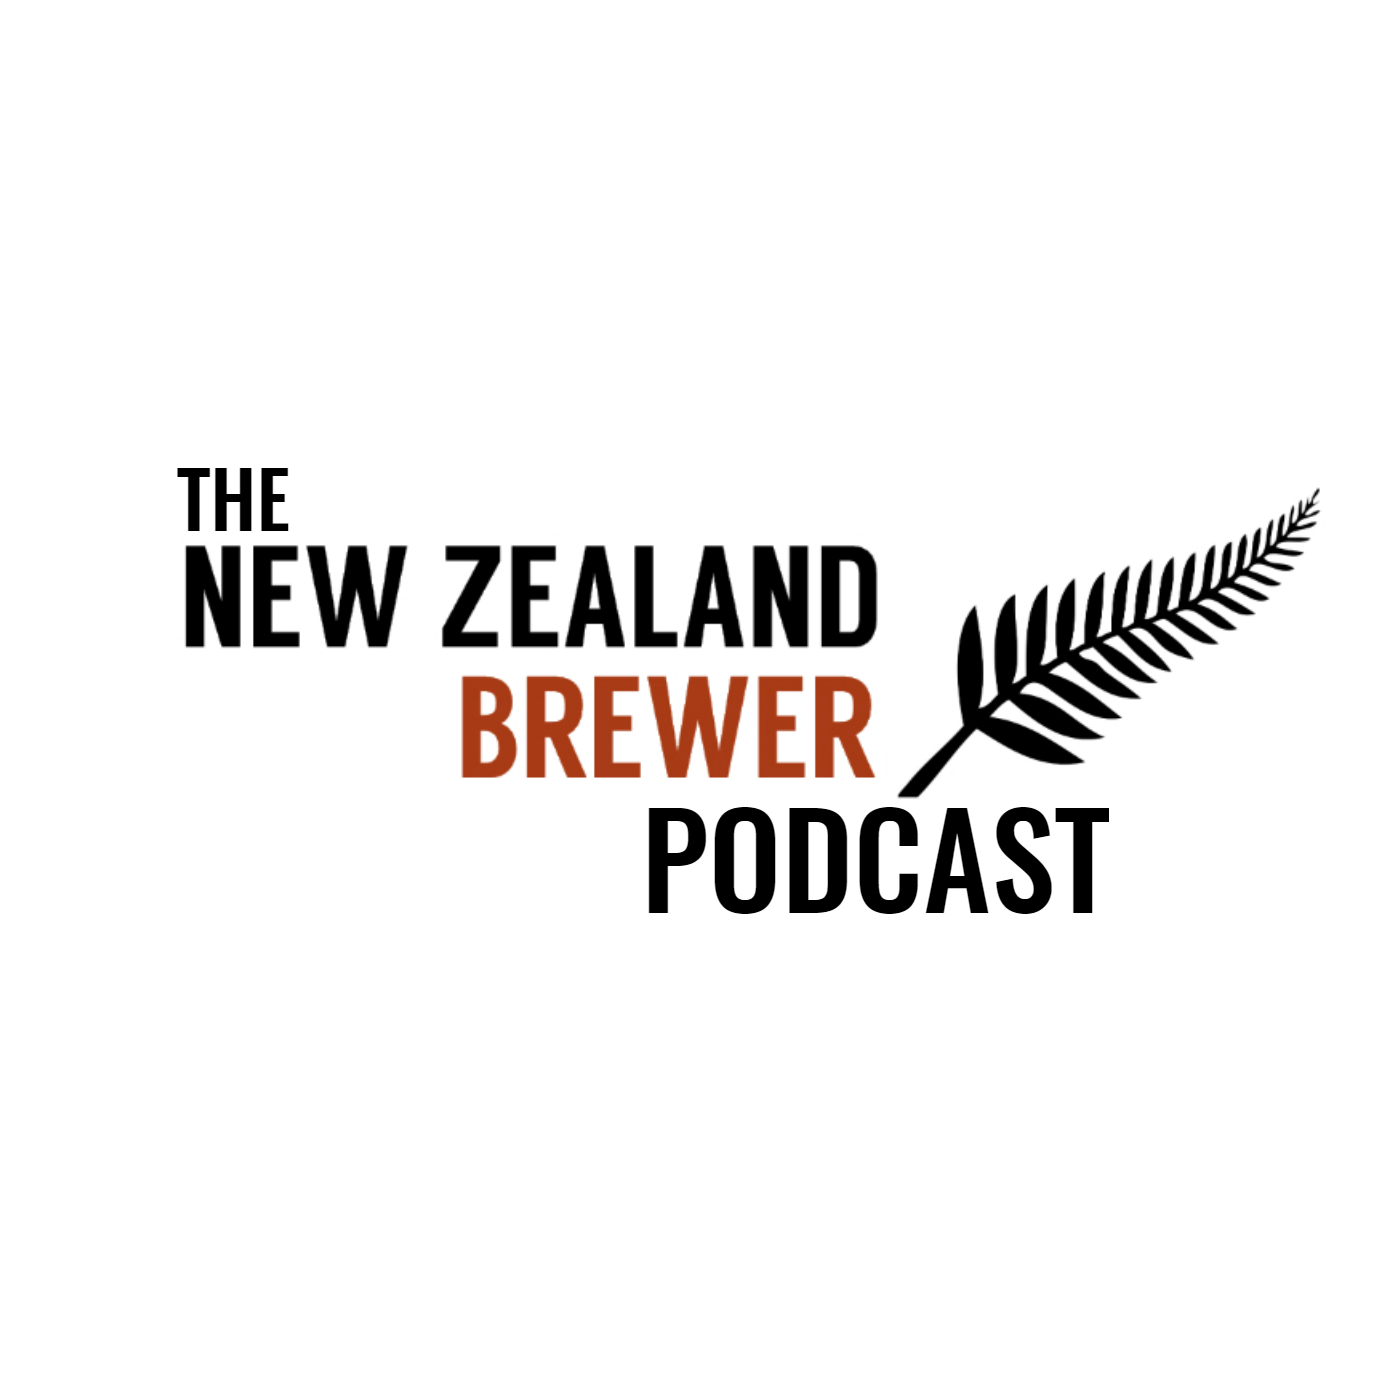 The New Zealand Brewer Podcast – New Zealand Brewer